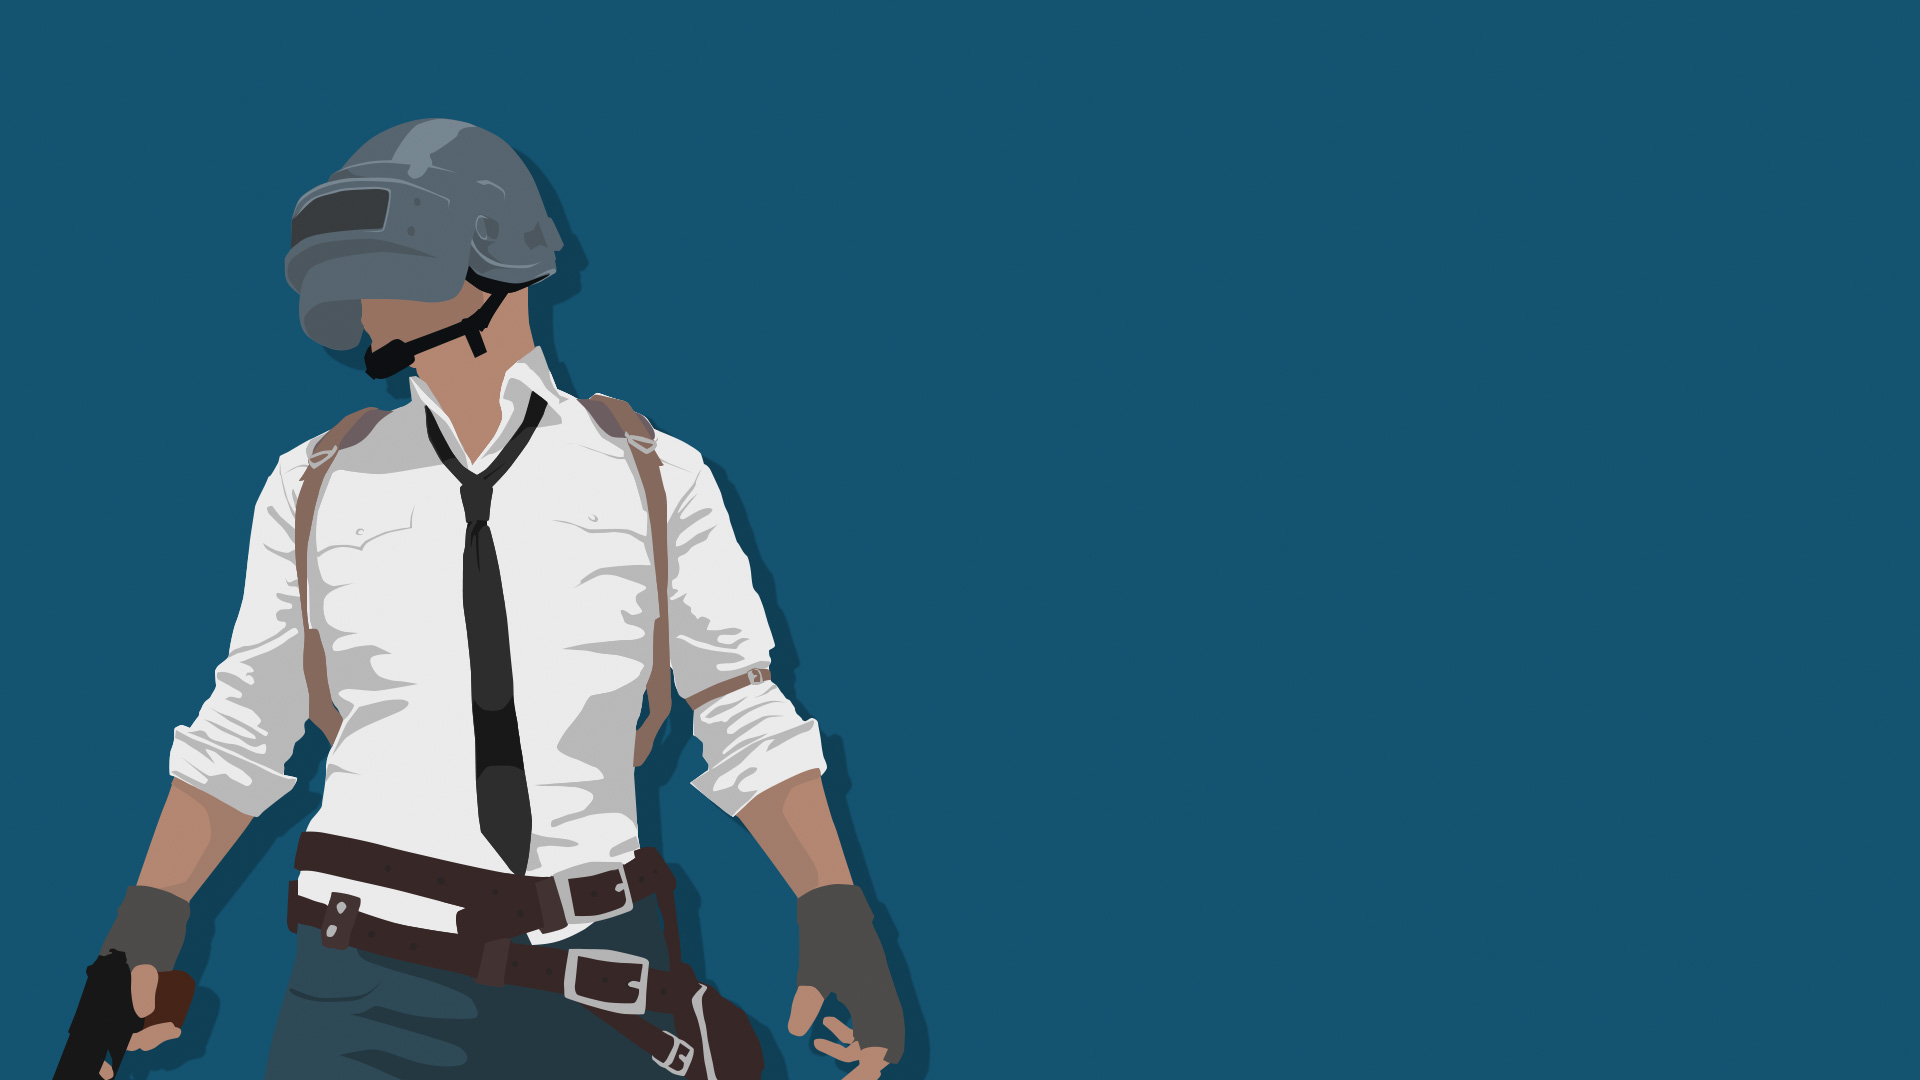 Pubg Helmet Guy 4k Pubg Wallpapers Playerunknowns: Playerunknowns Battlegrounds Minimalism, HD Games, 4k